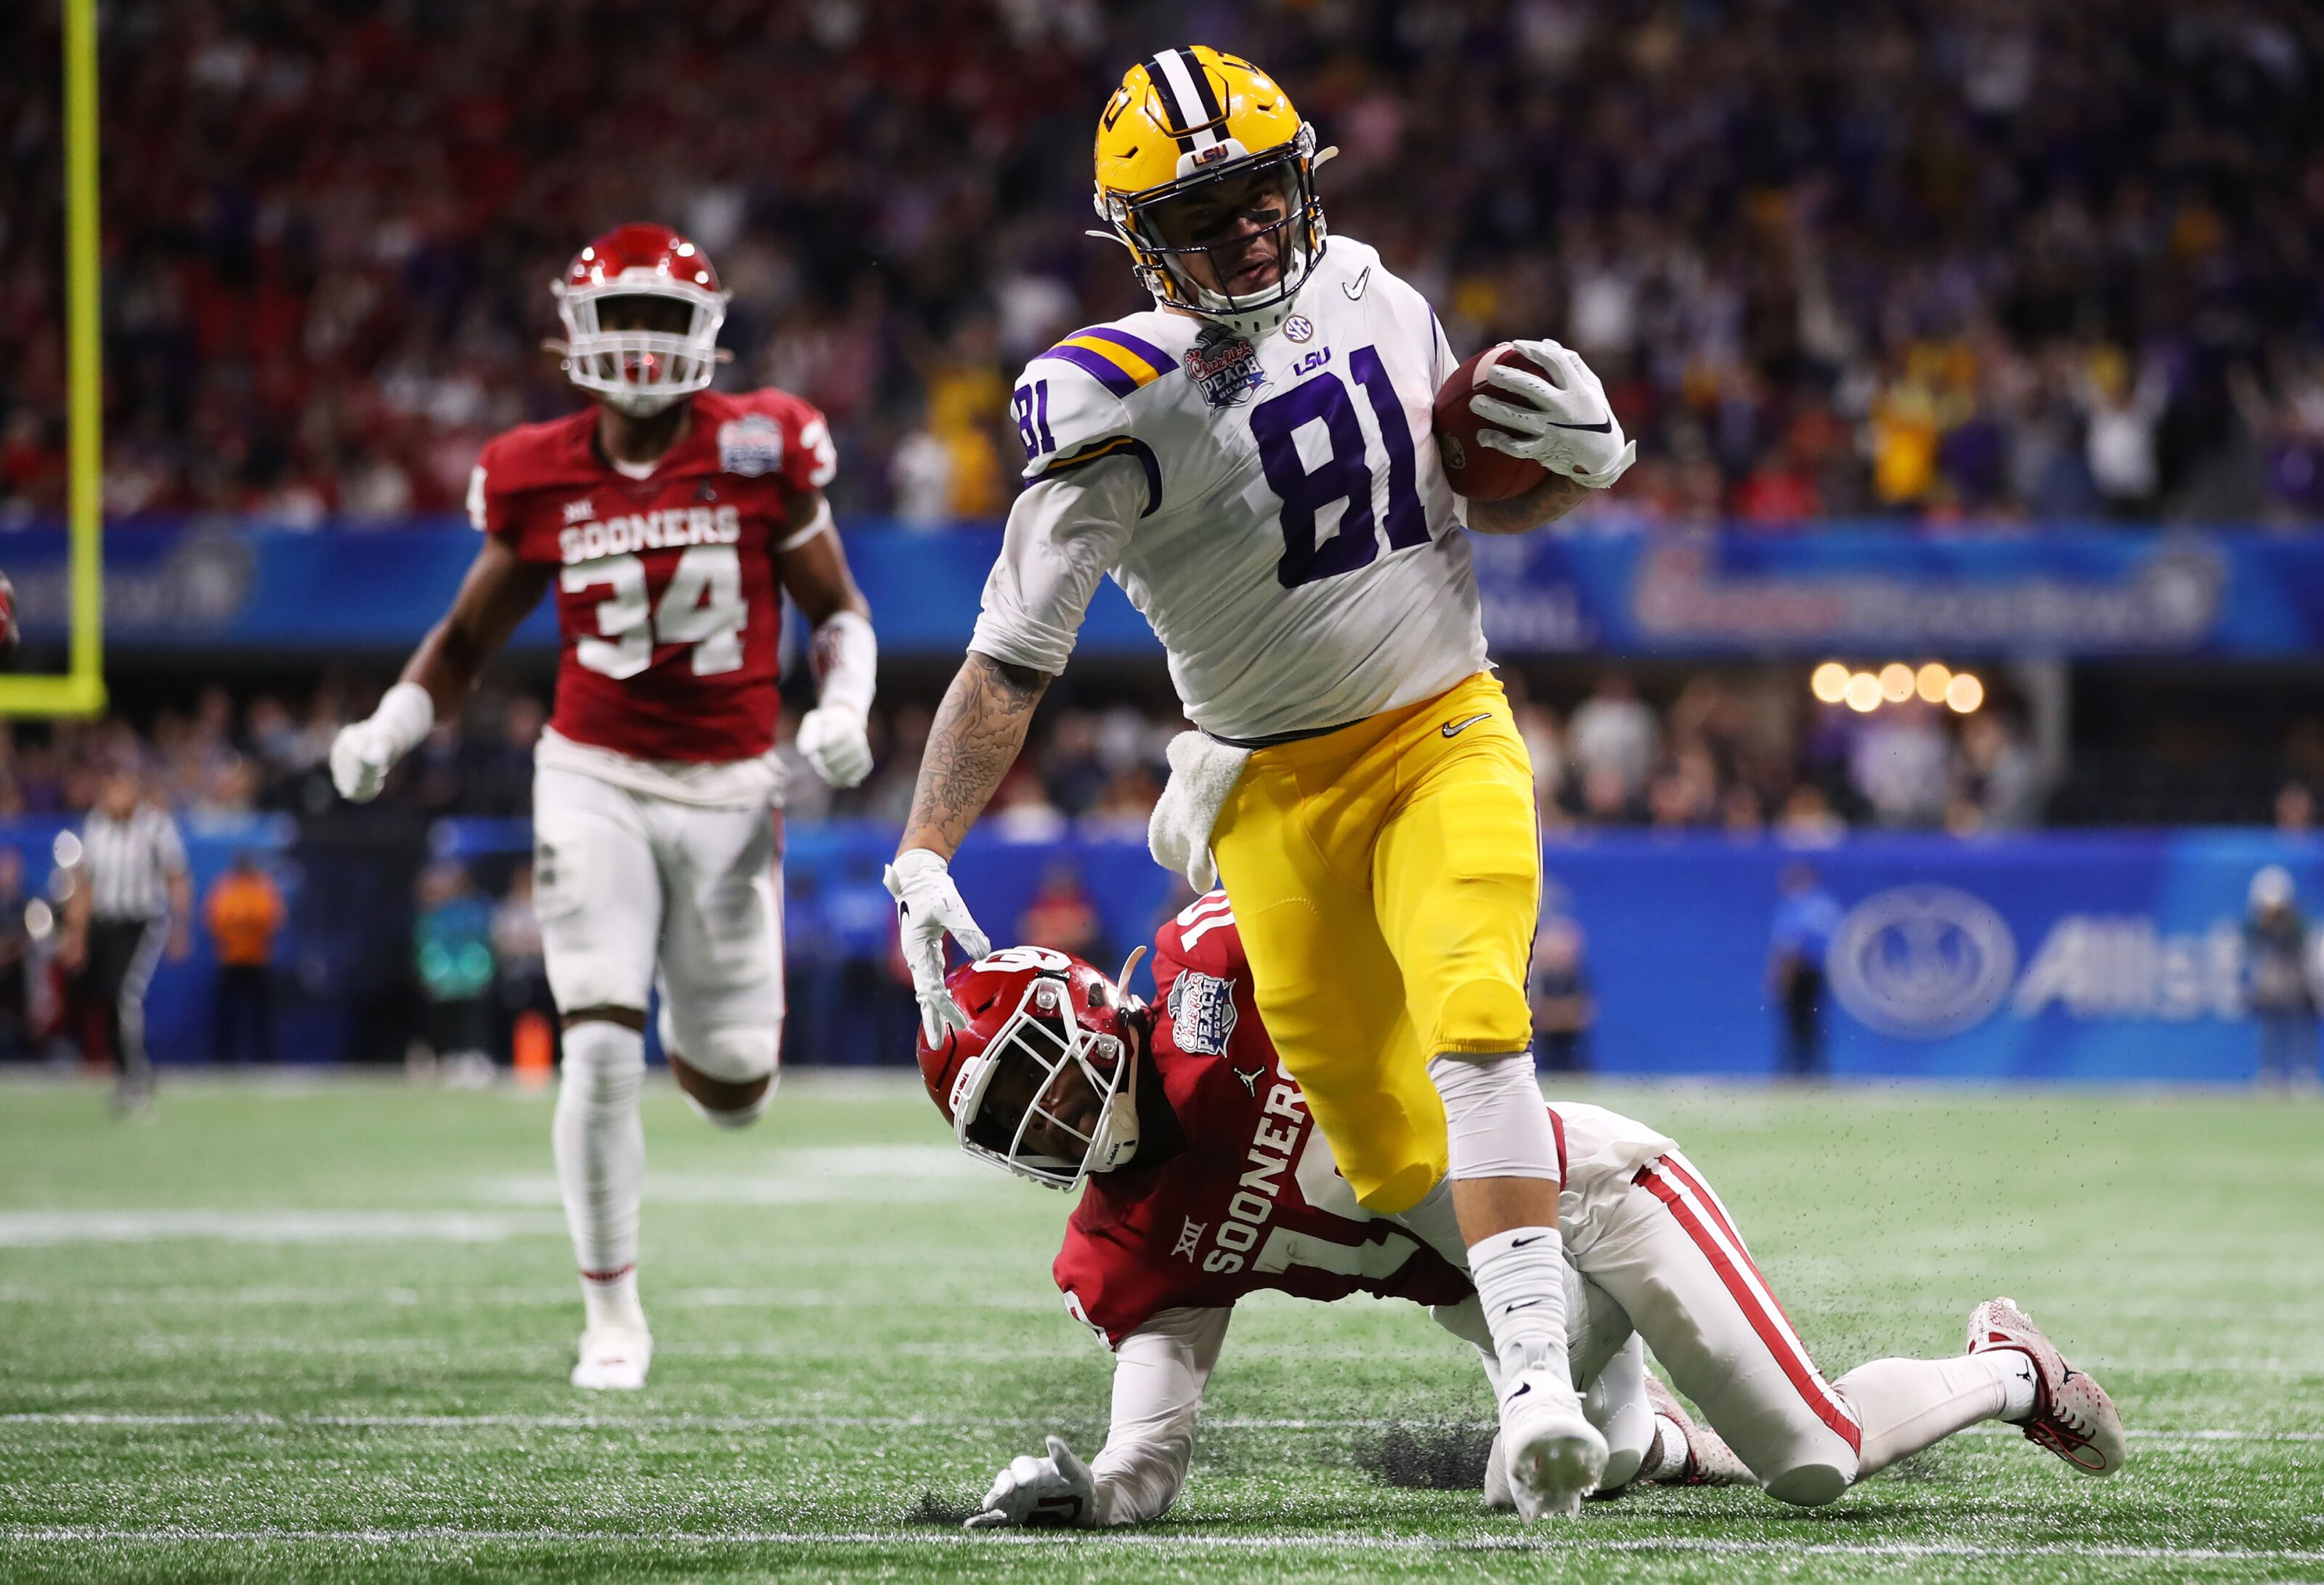 Tight ends the Seahawks could target in the 2020 NFL Draft